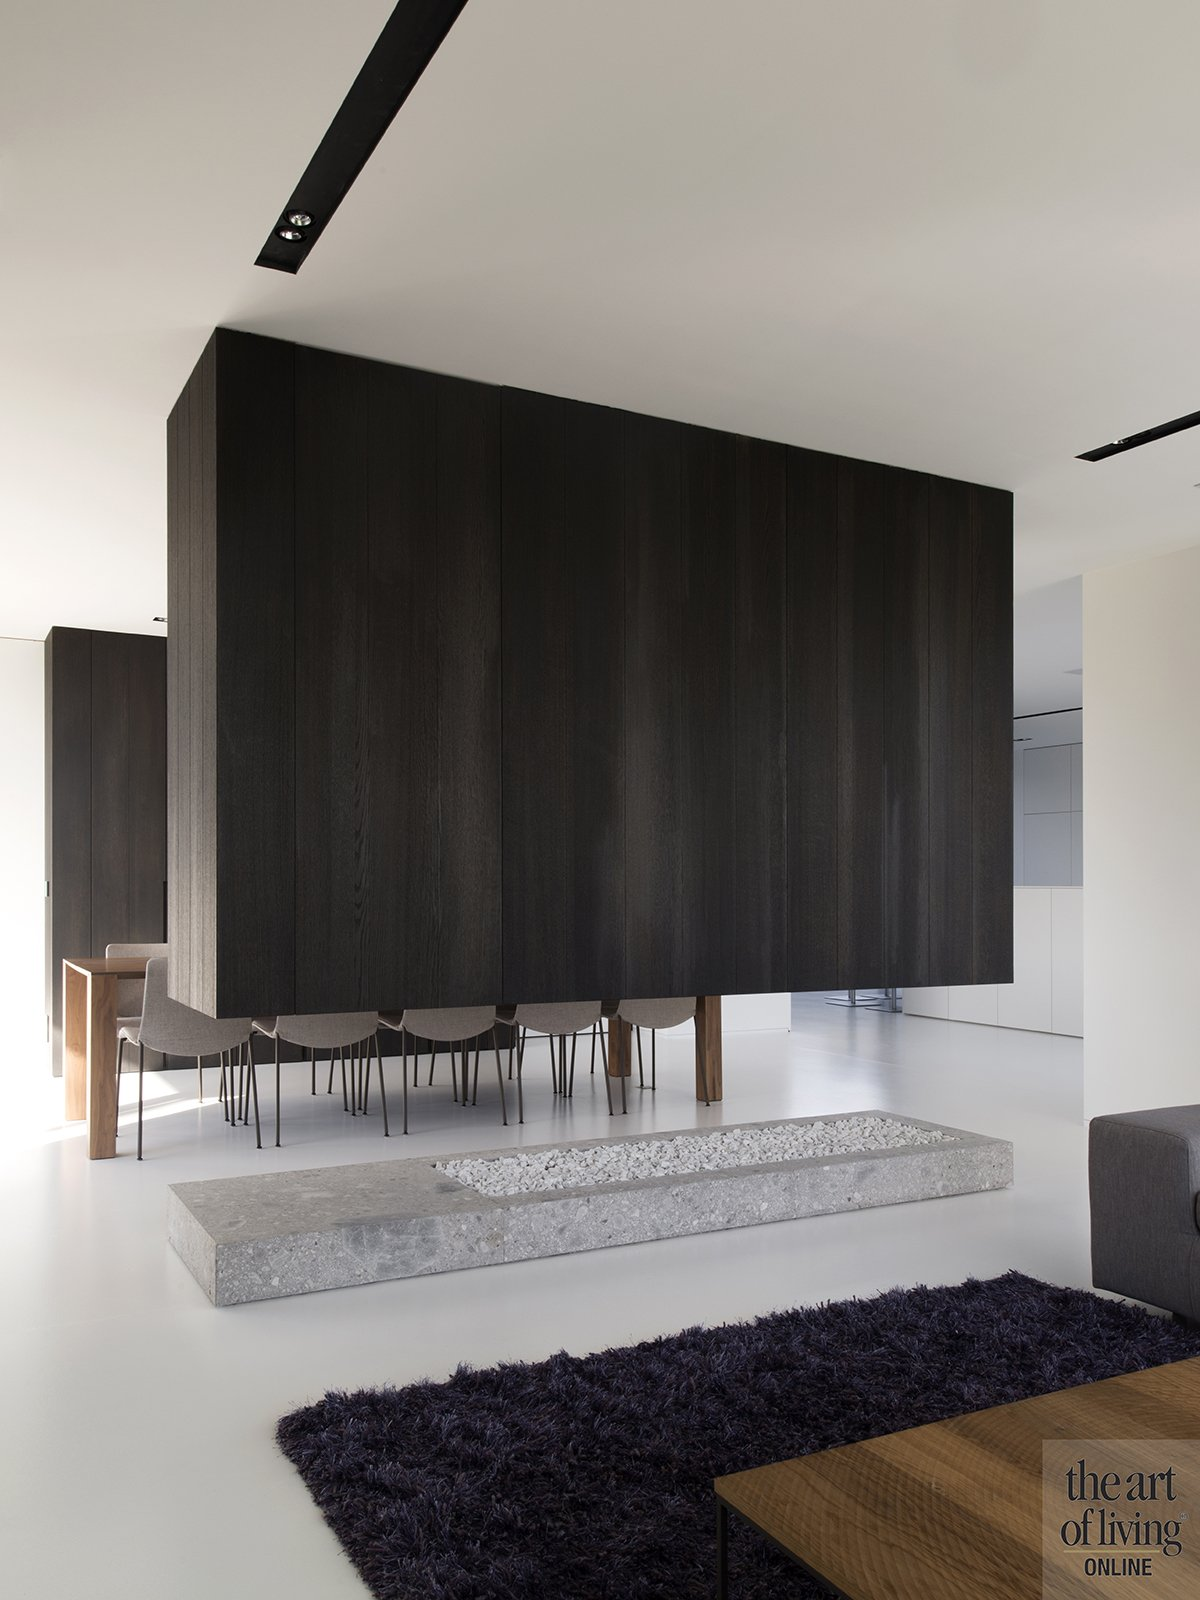 tijdloos interieur, PMV Architects, the art of living